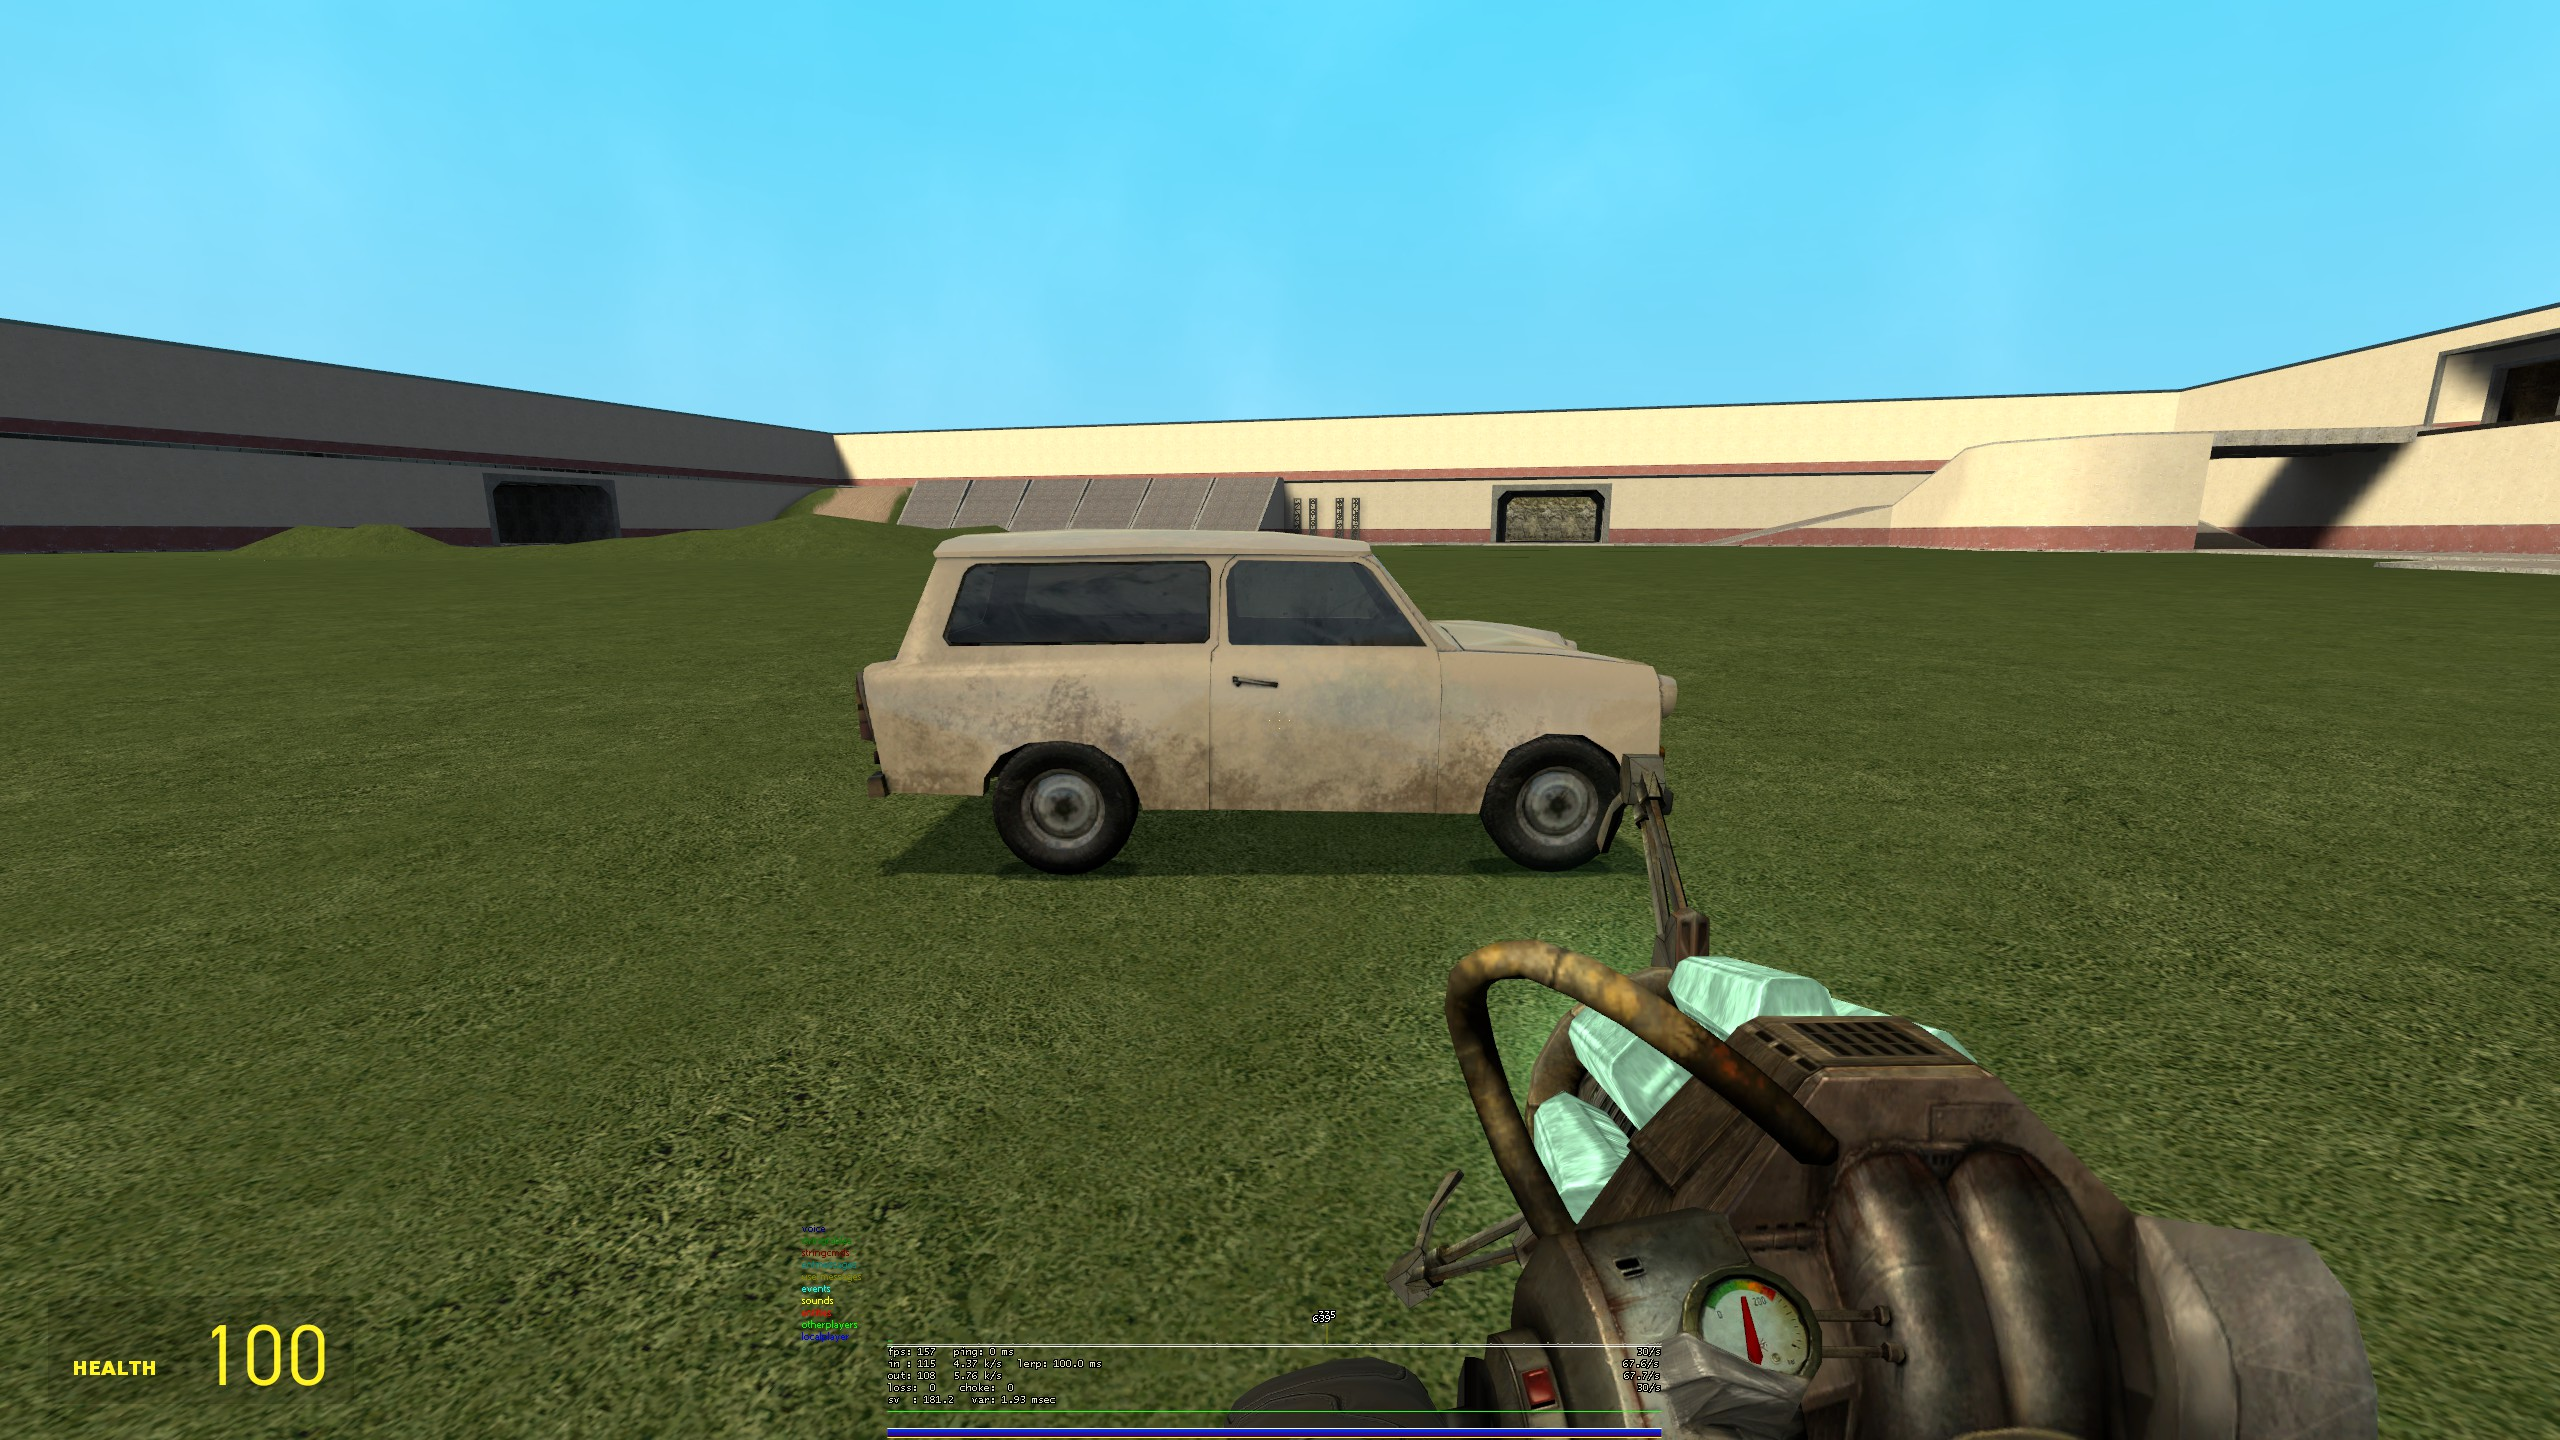 How to make a car in Garrys Mod